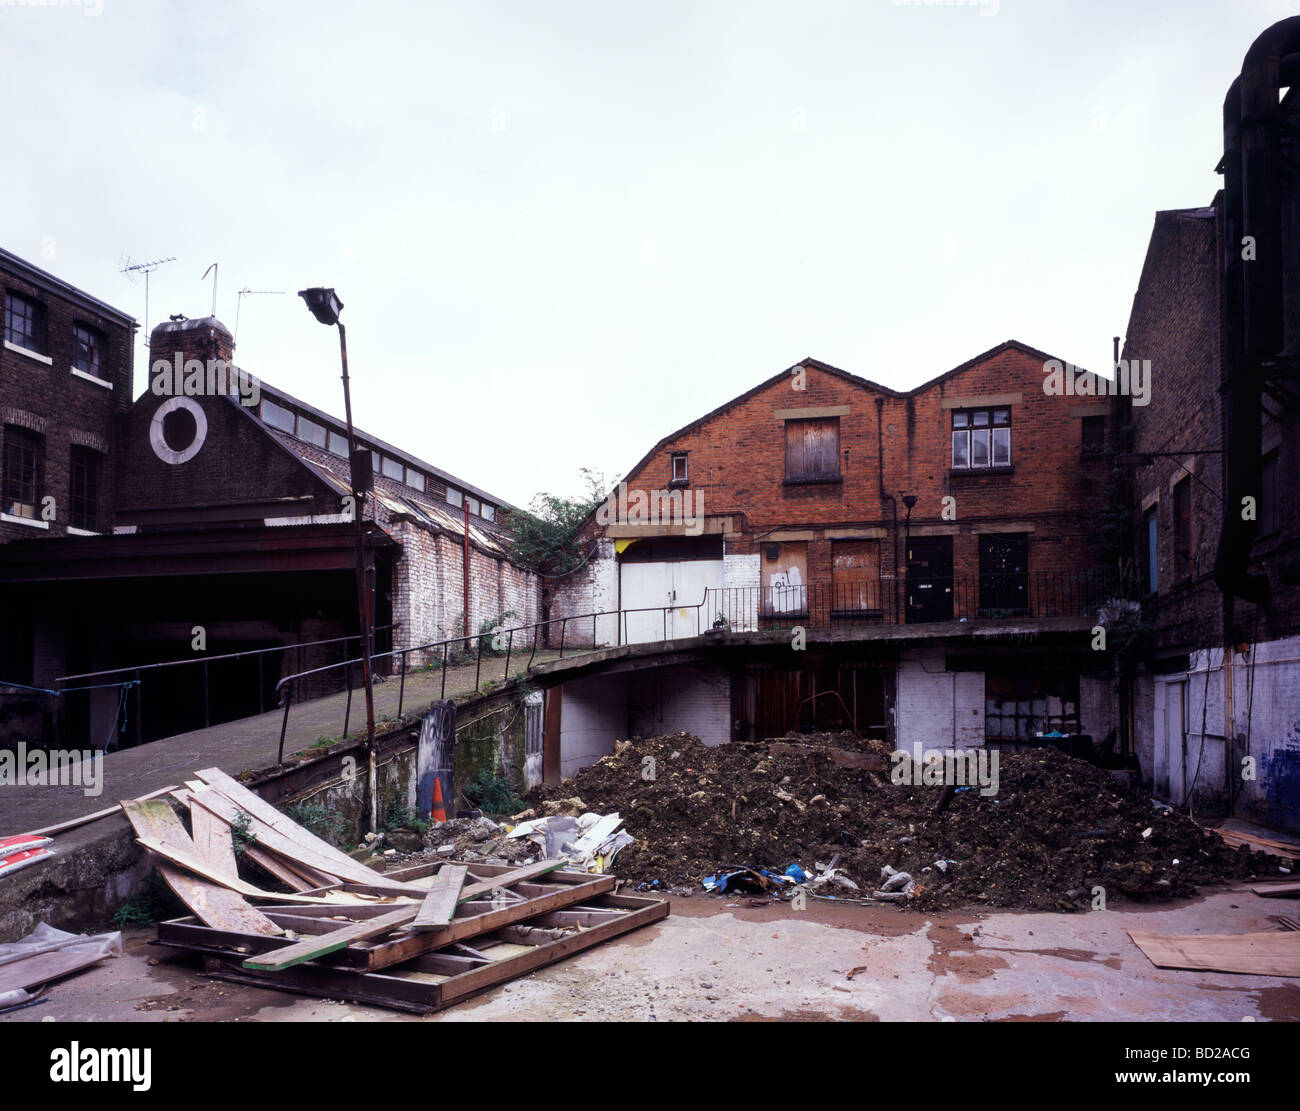 Demolished building in the old Kings Cross area London UK - Stock Image